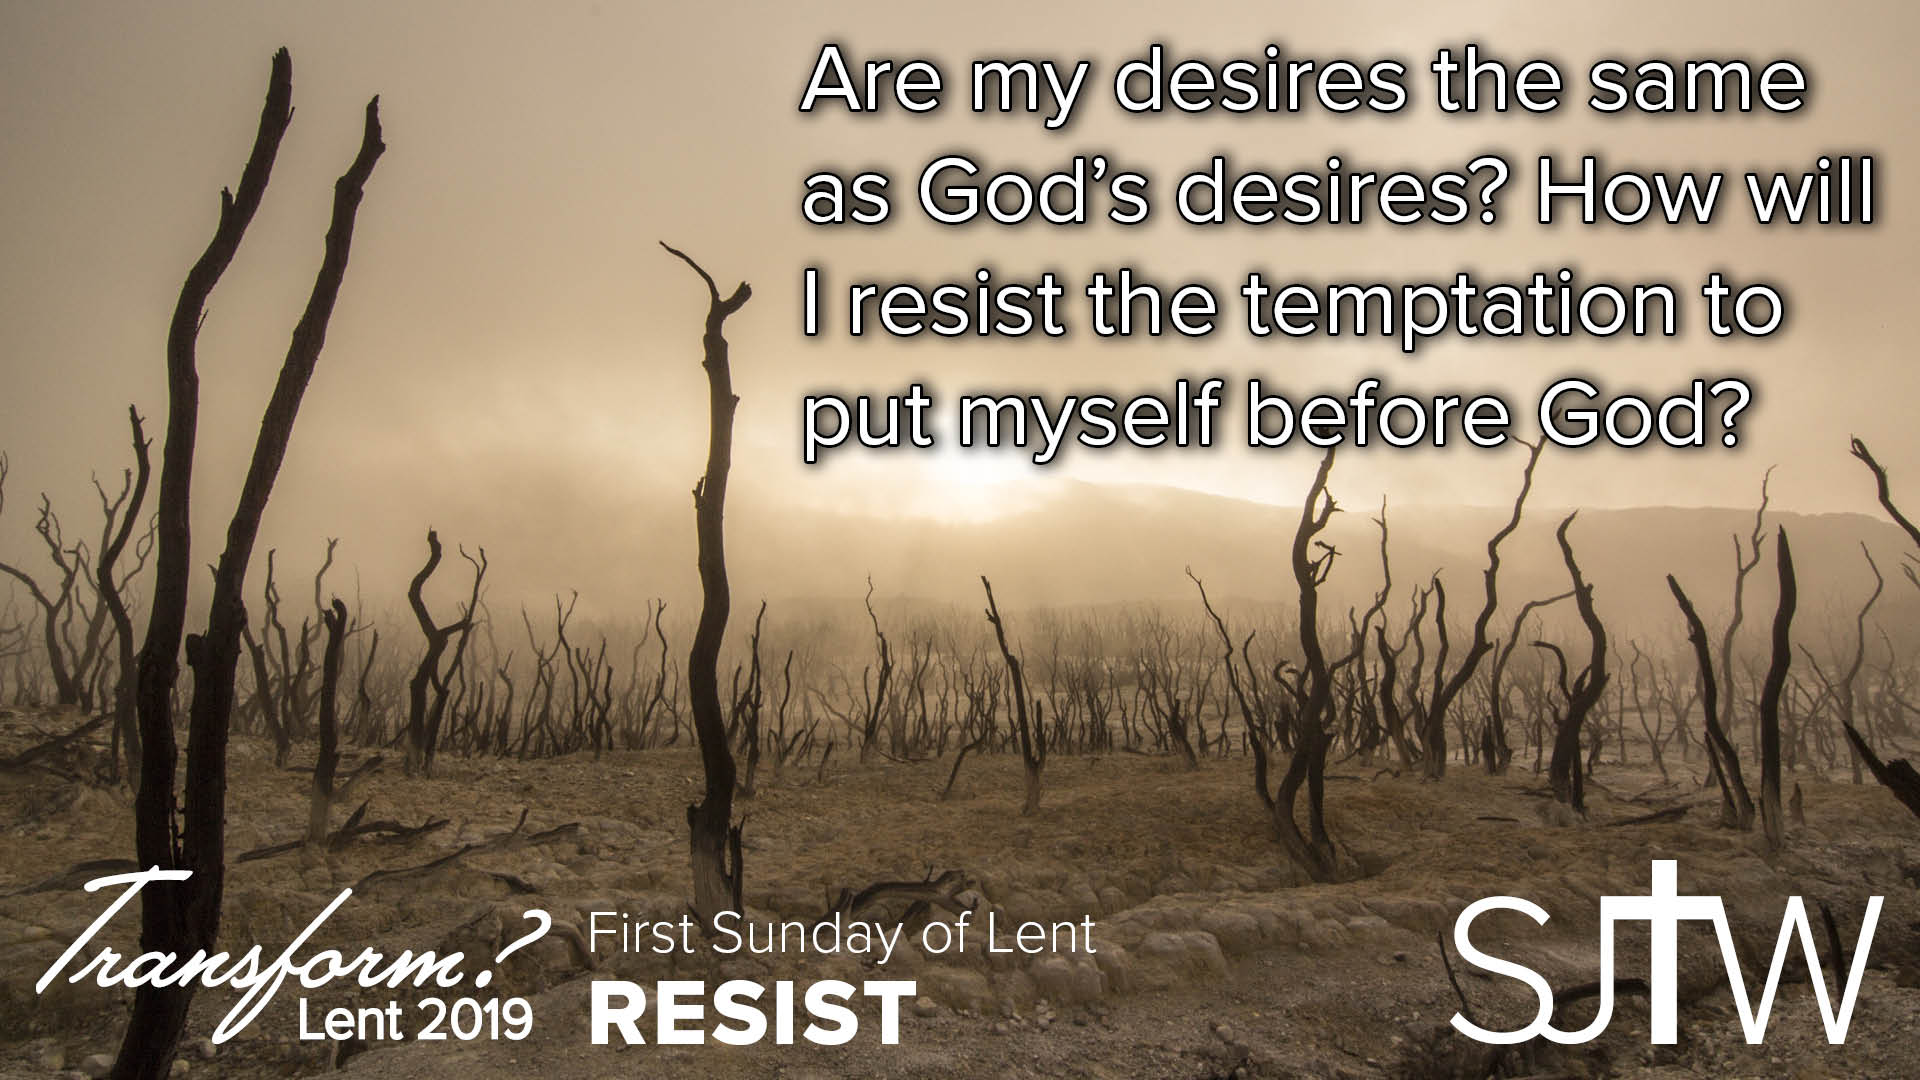 First Sunday of Lent - Resist